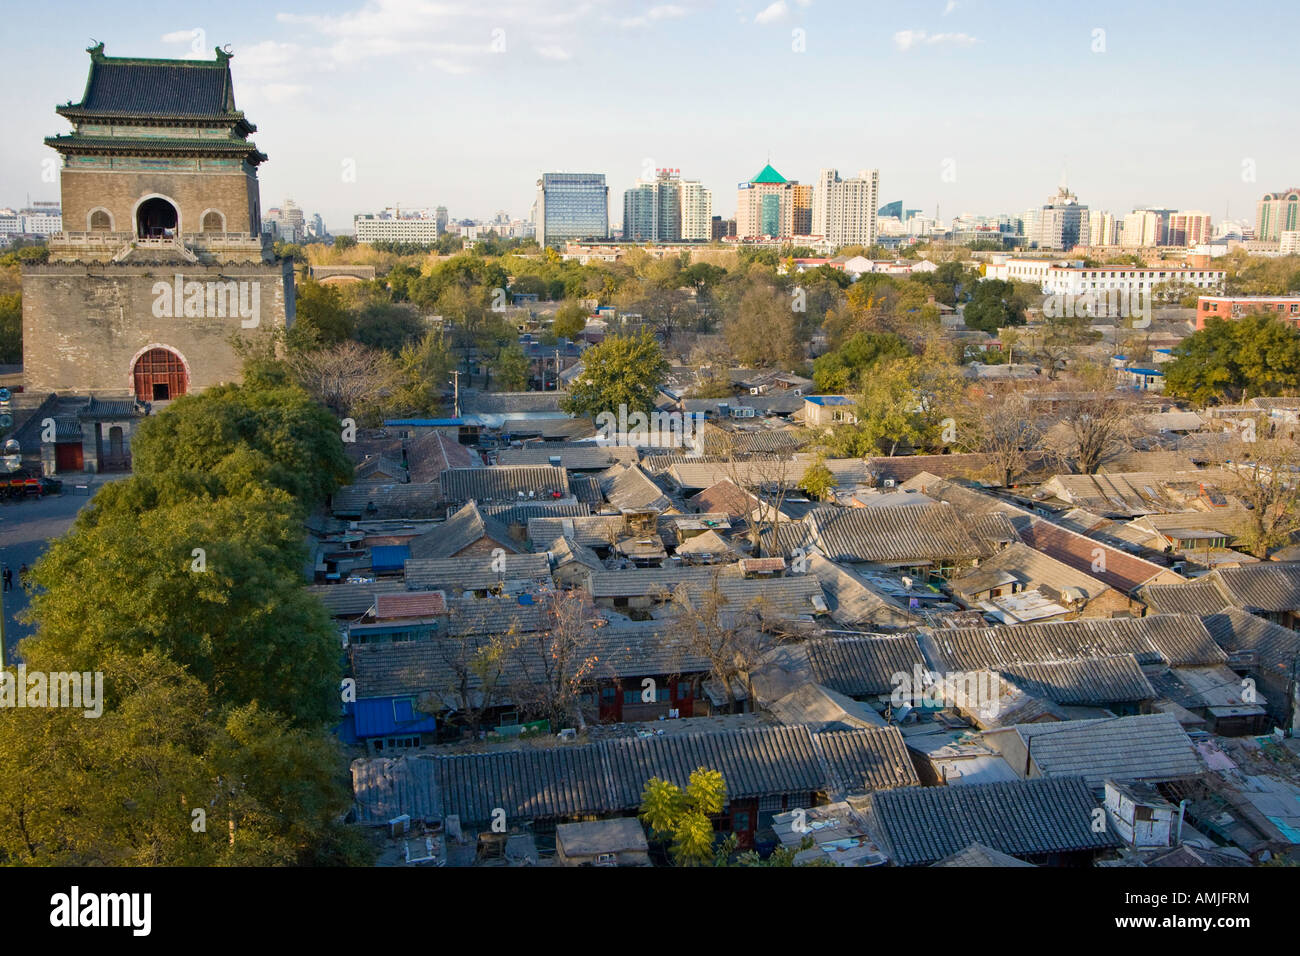 The Bell Tower and Rooftops of Surrounding Hutong Beijing China - Stock Image